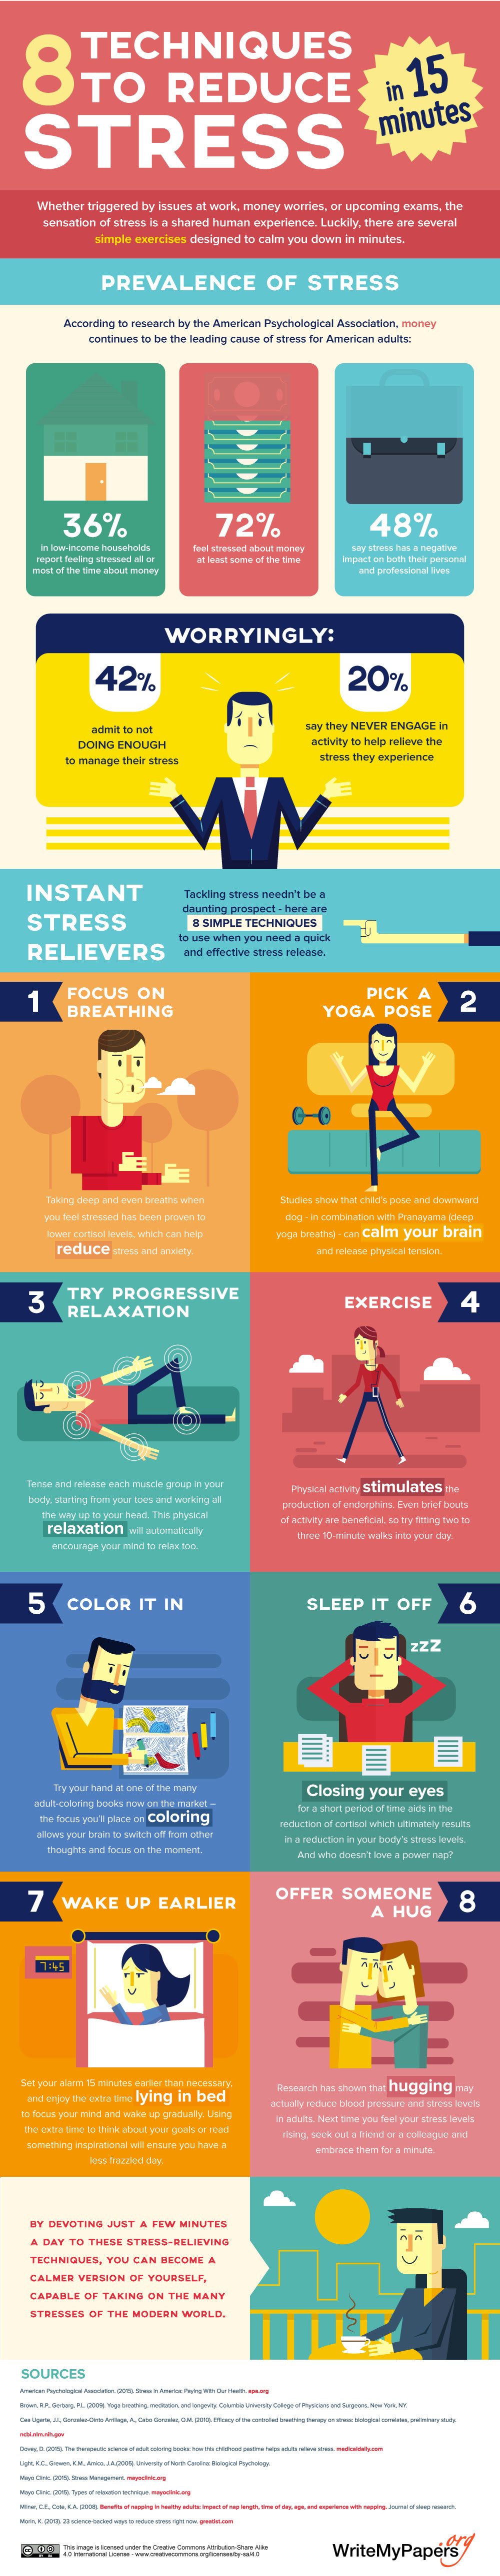 8 Techniques to Reduce Stress in 15 Minutes